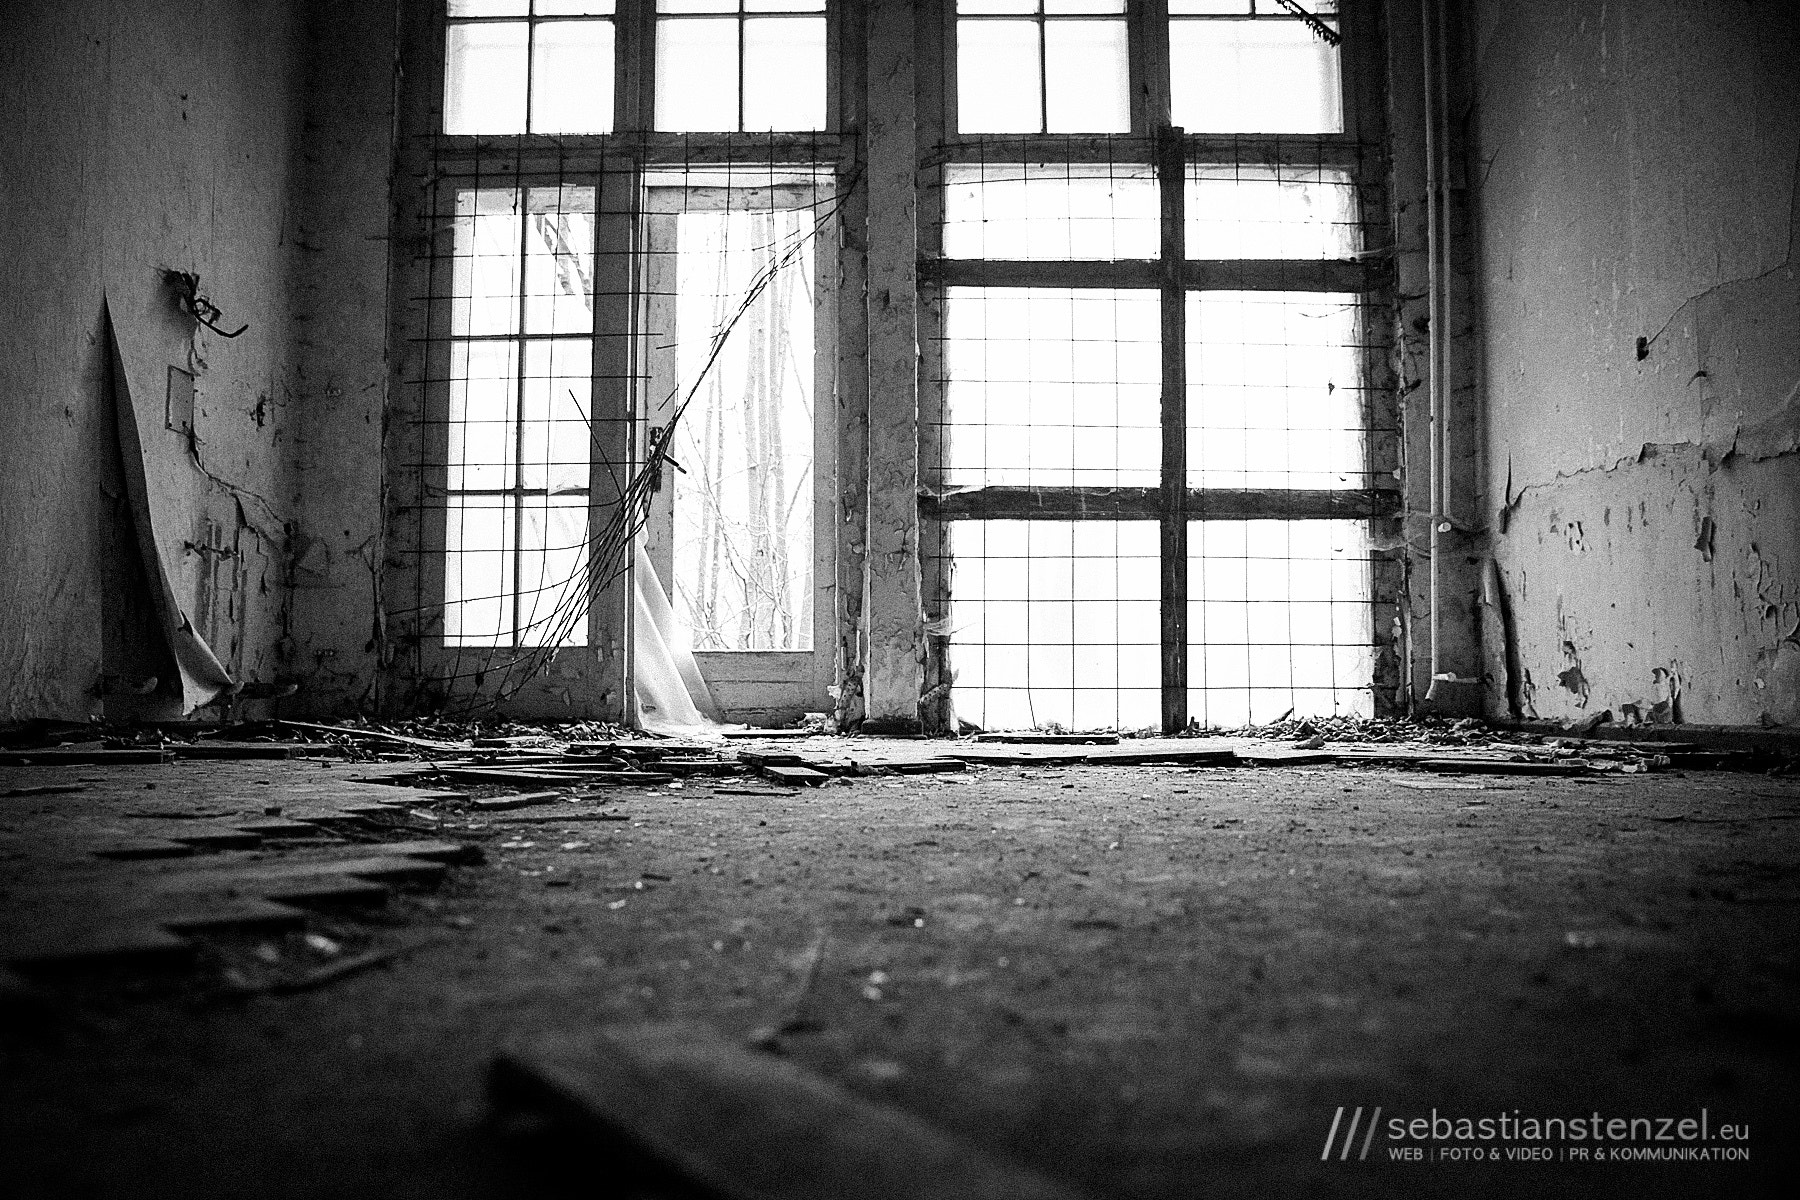 Photograph Lost Place by Sebastian Stenzel on 500px